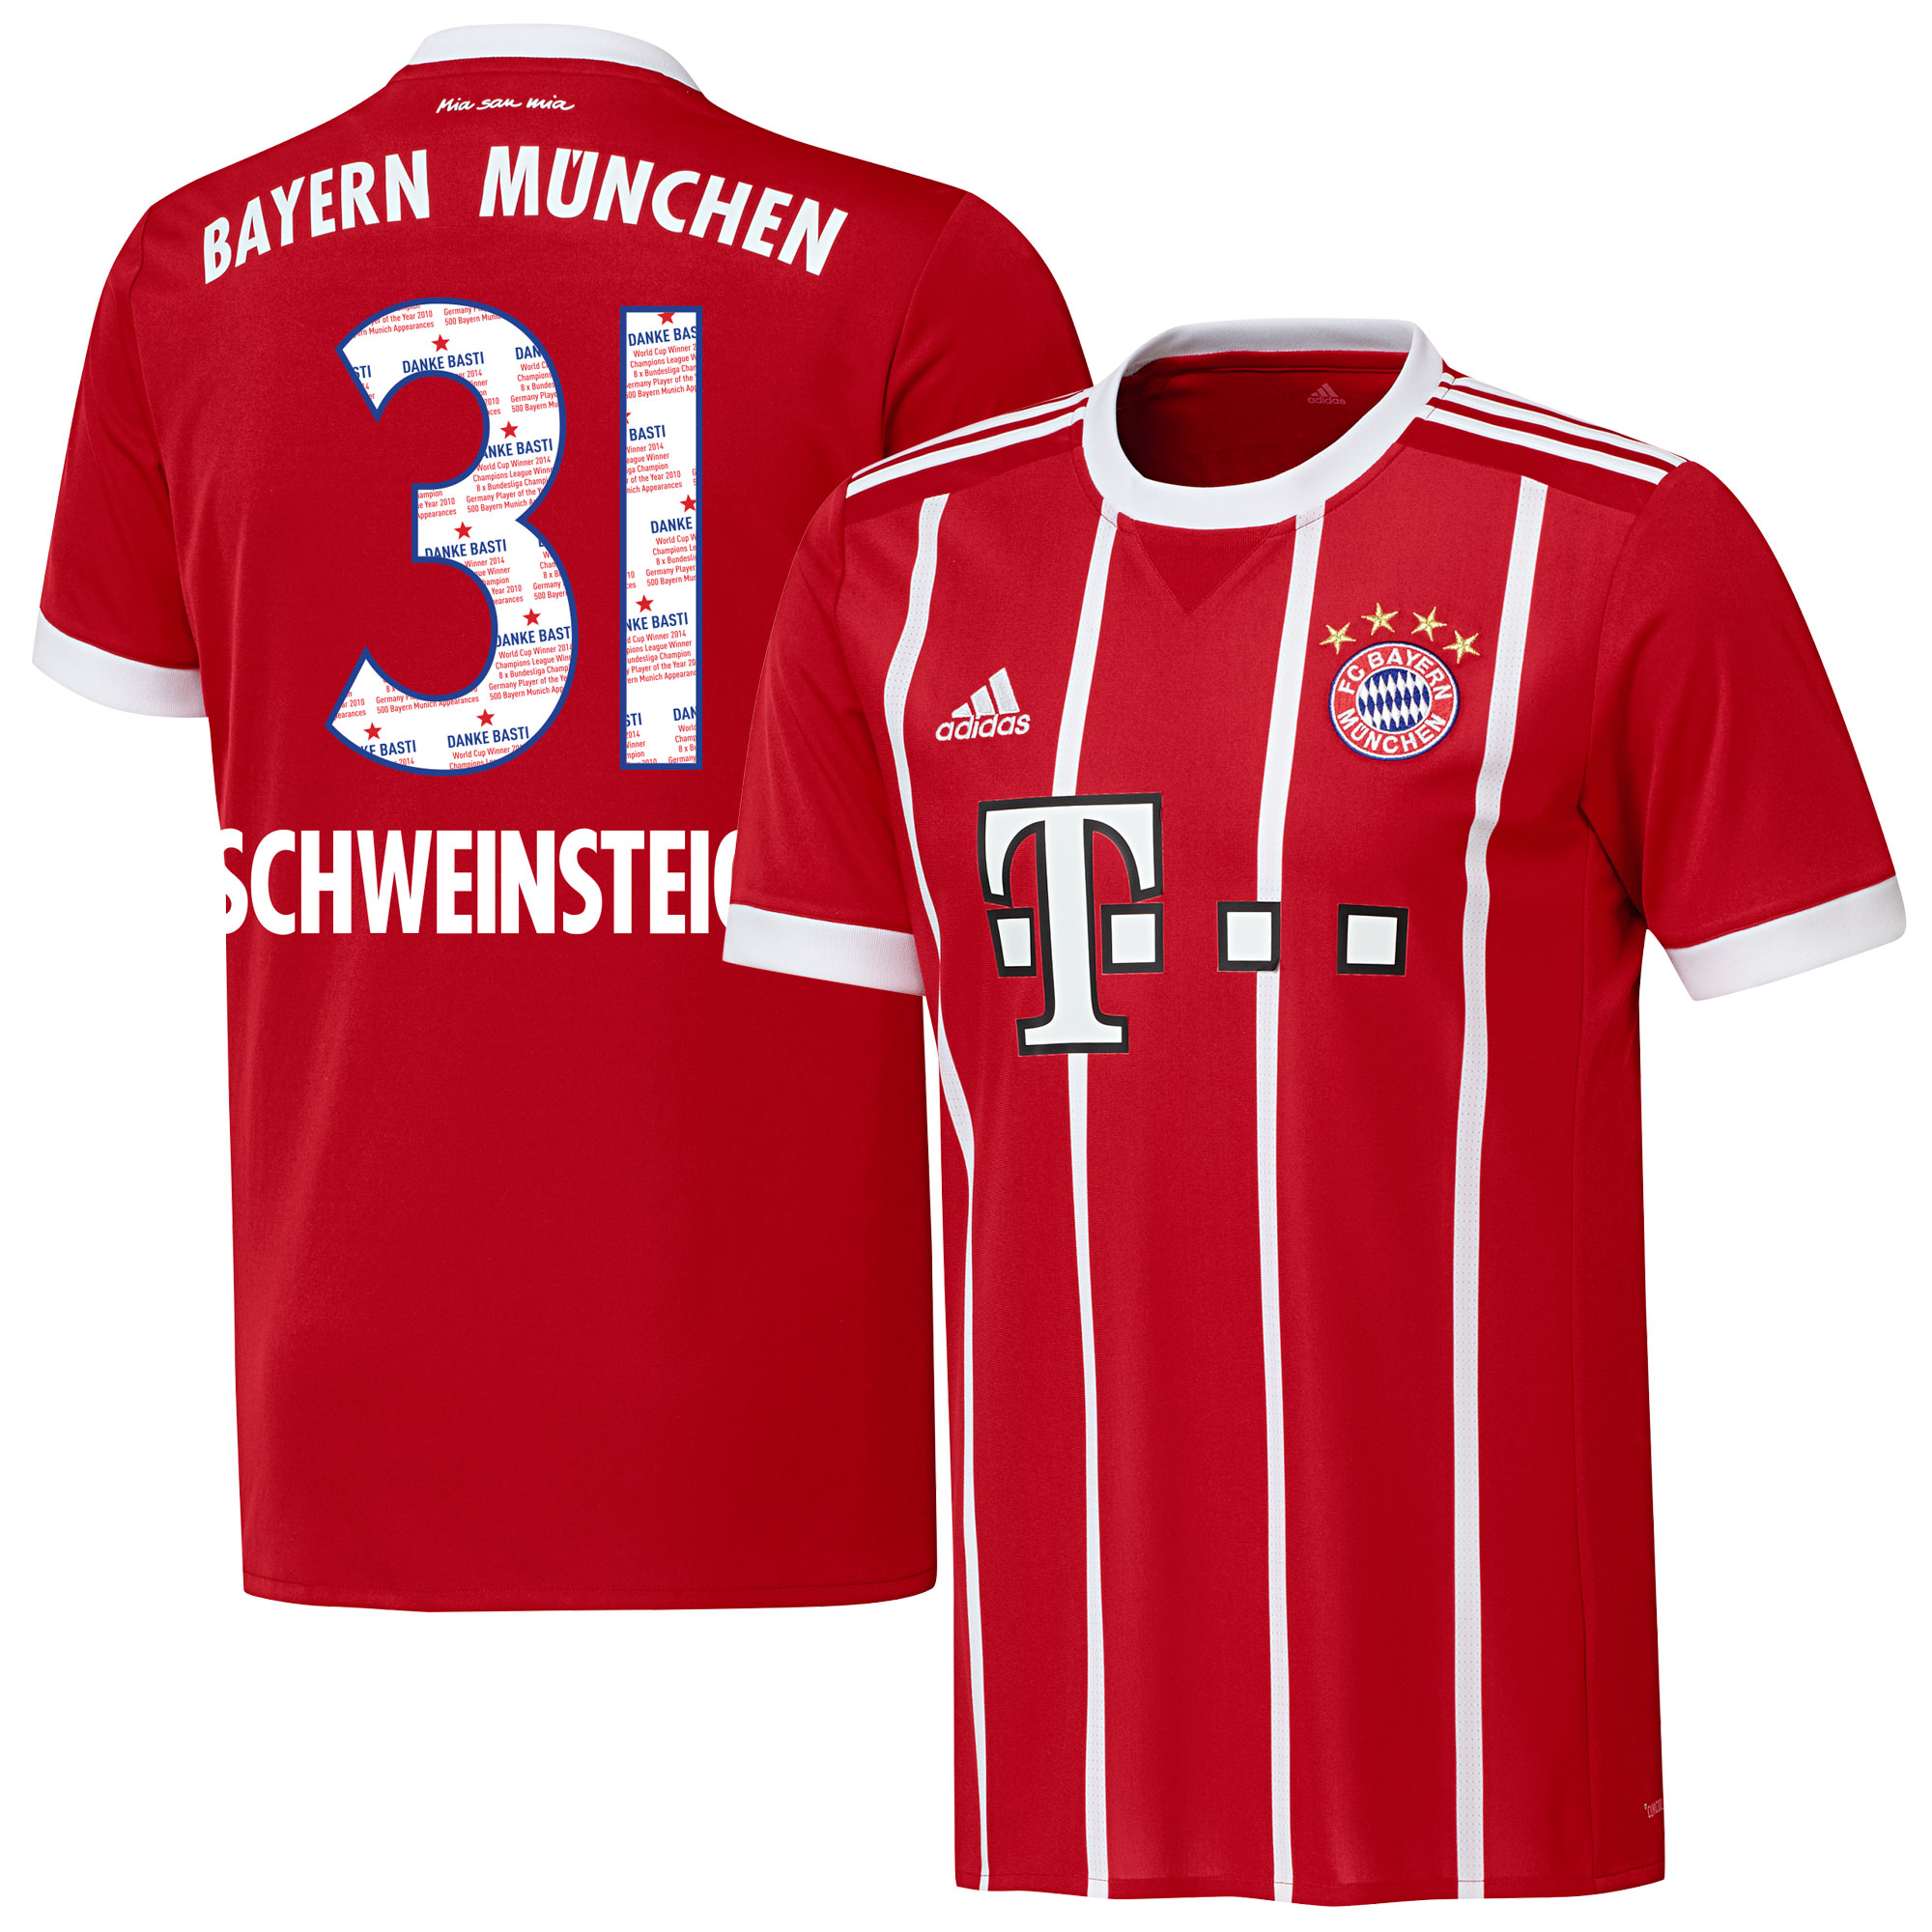 Bayern Munich Home футболка